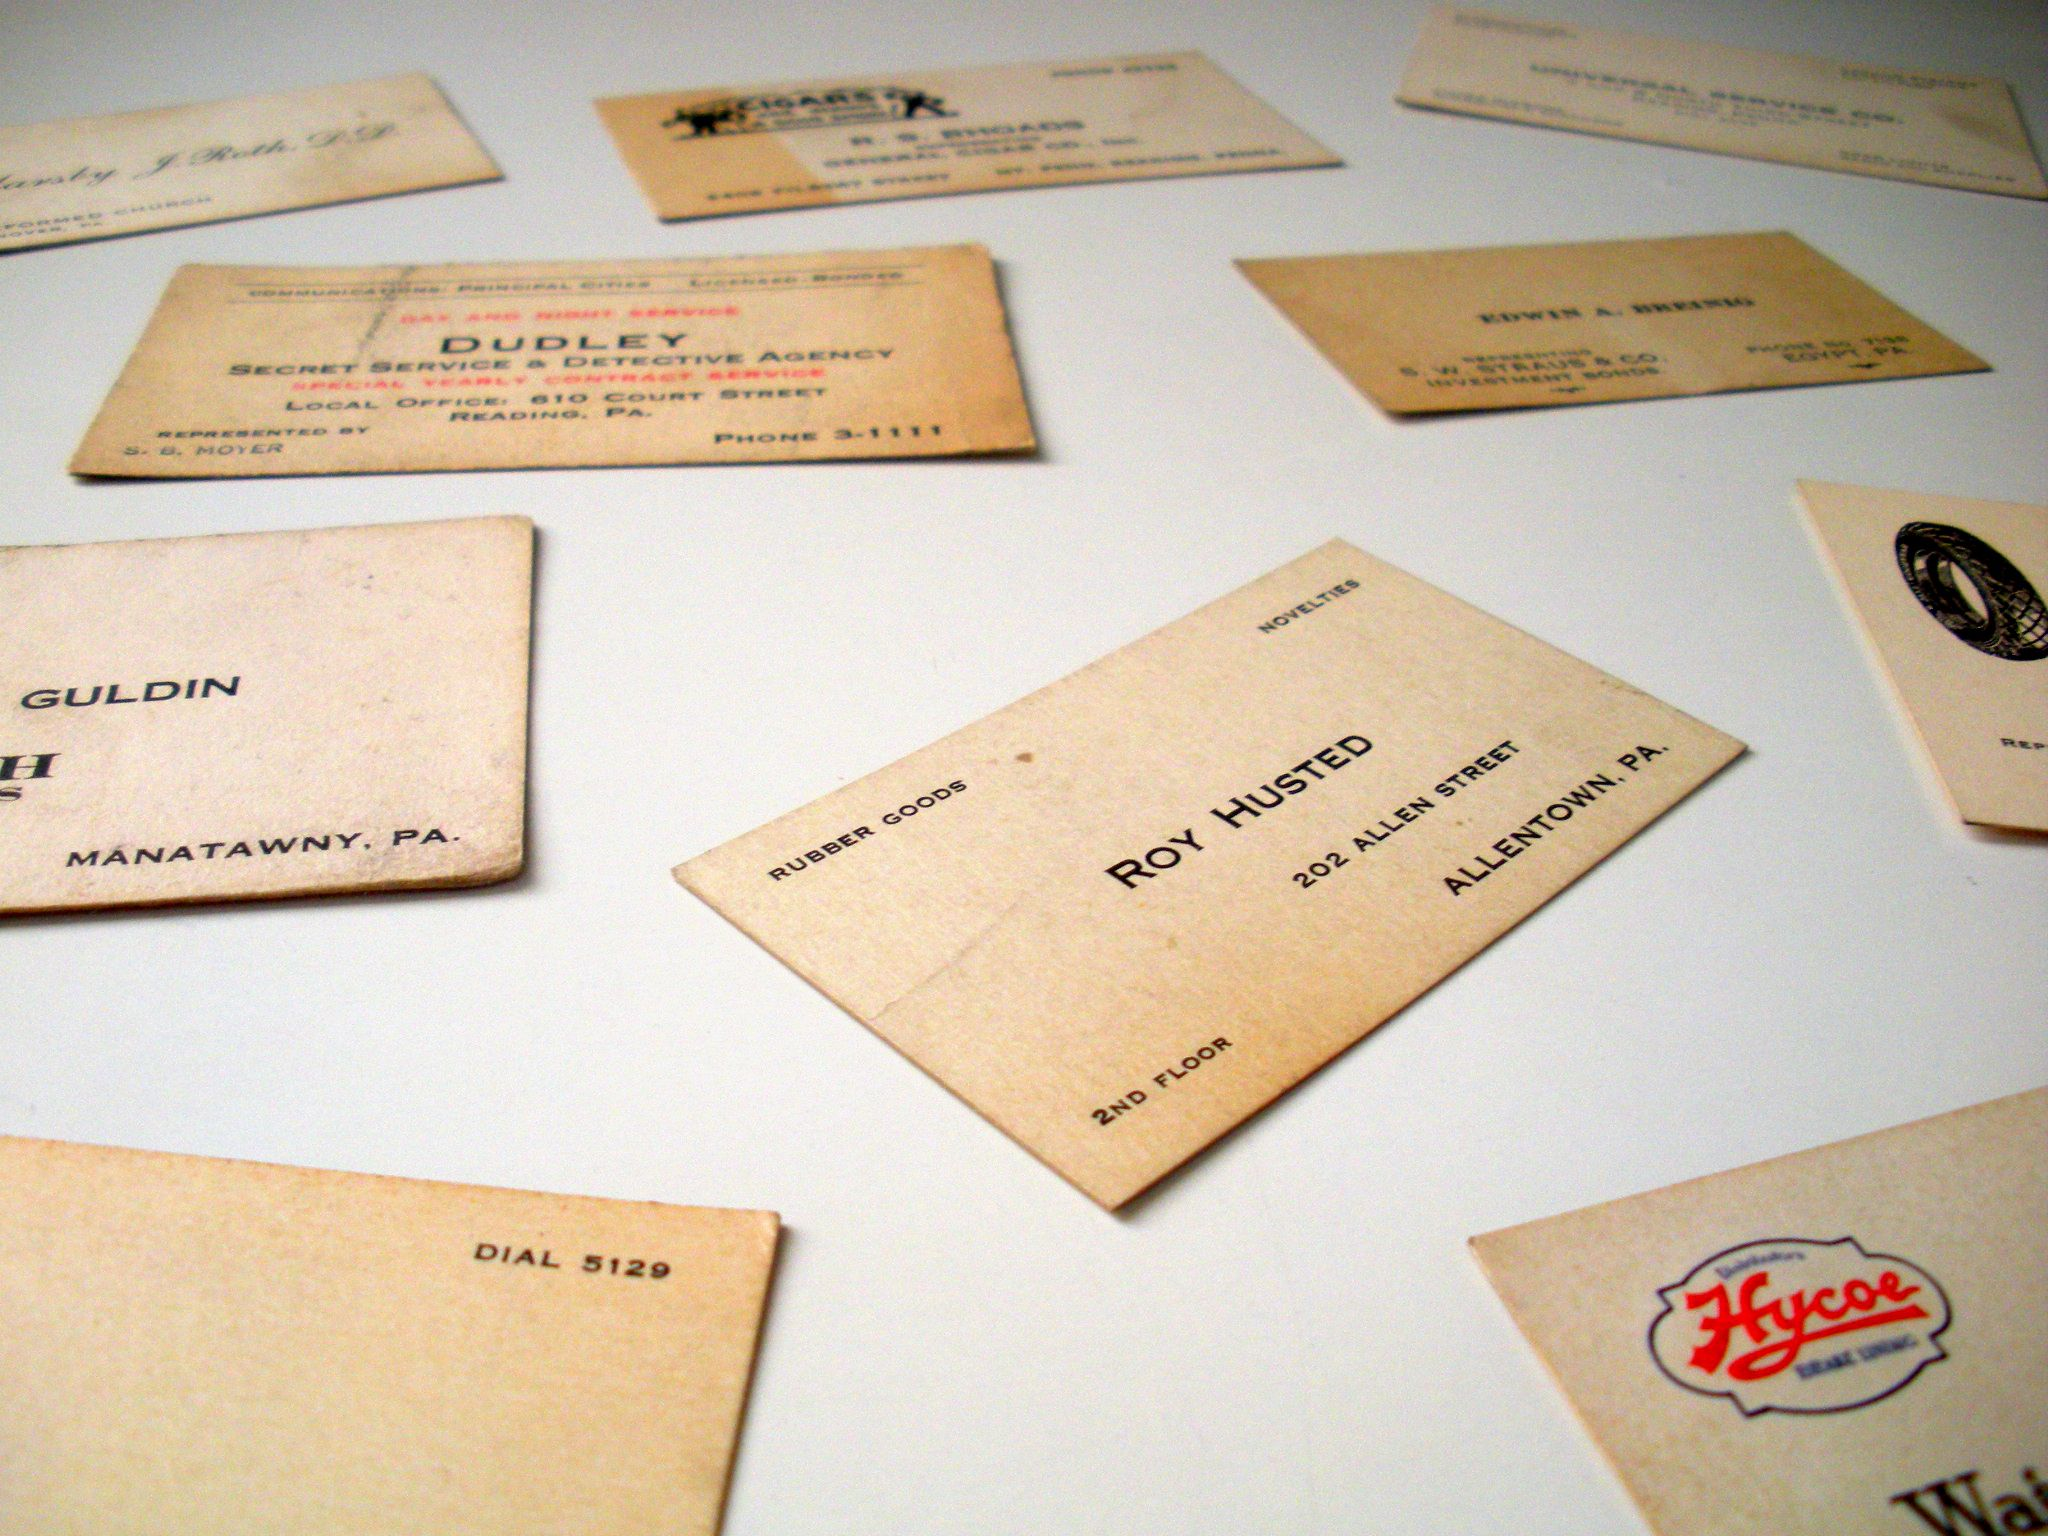 vintage business cards - Google Search | Business cards | Pinterest ...